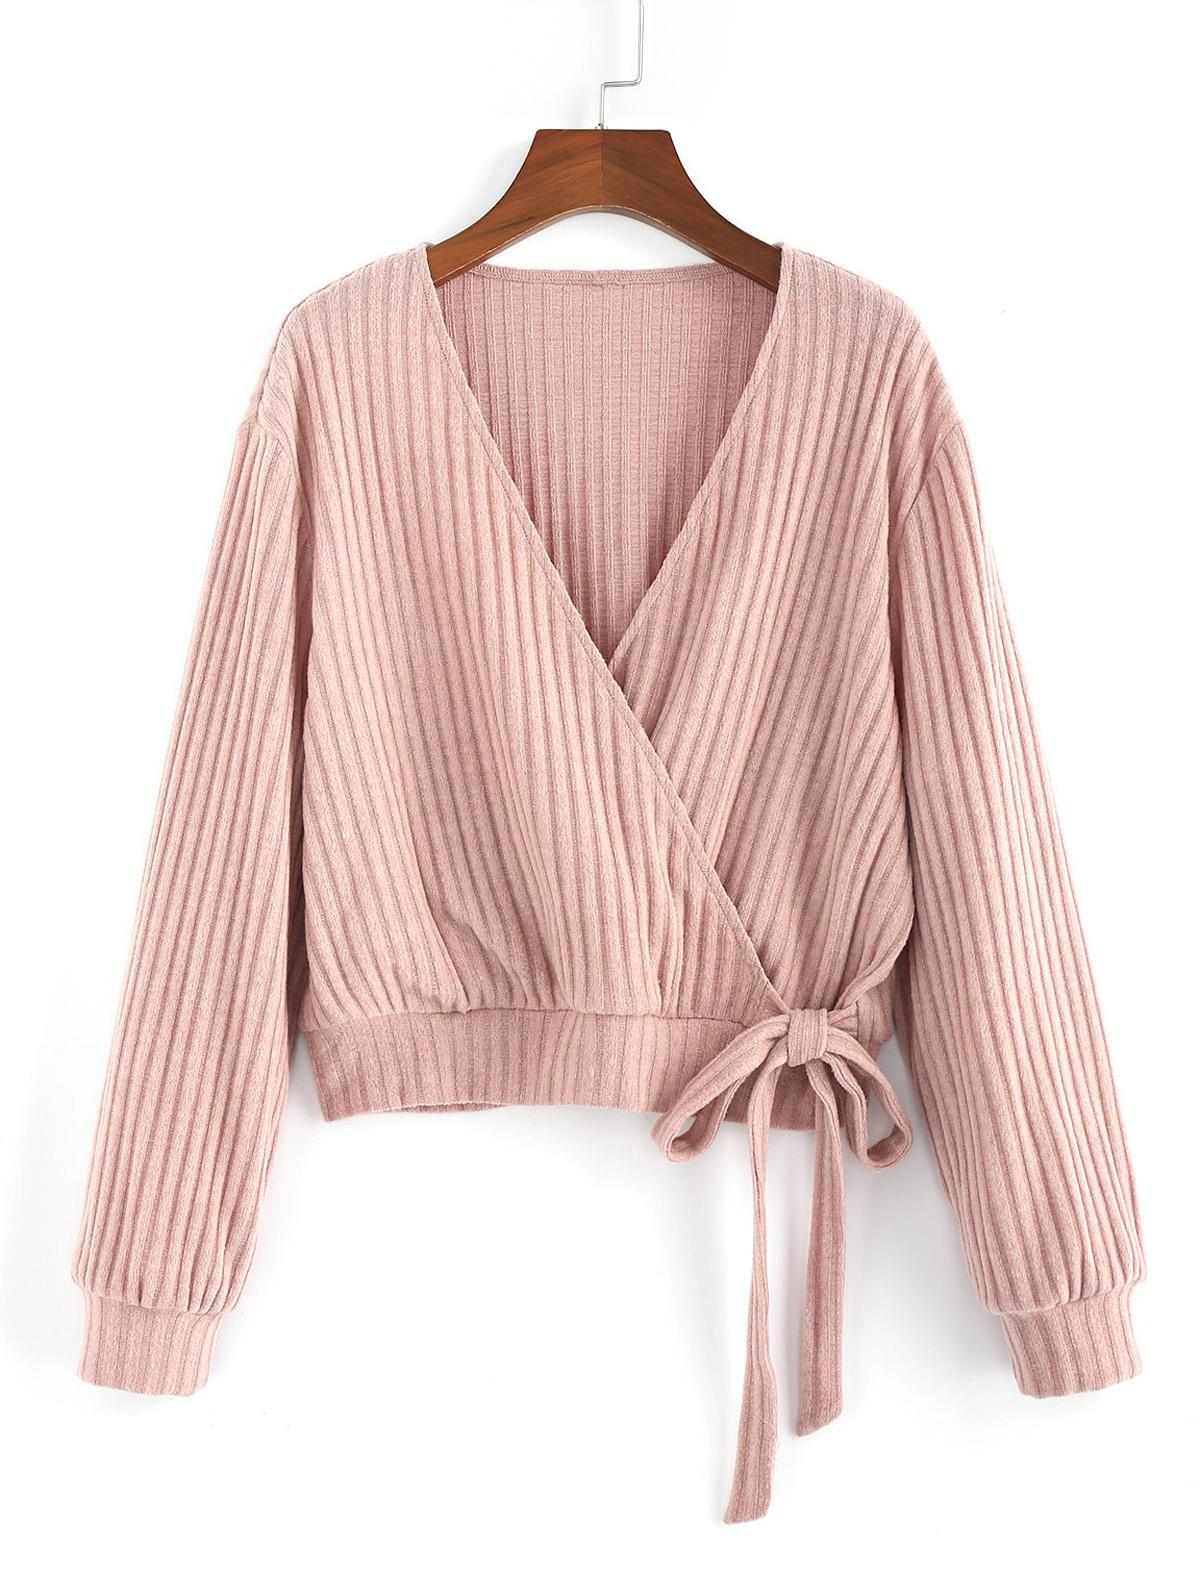 ZAFUL Plunge Neck Knotted Ribbed Surplice Knitwear